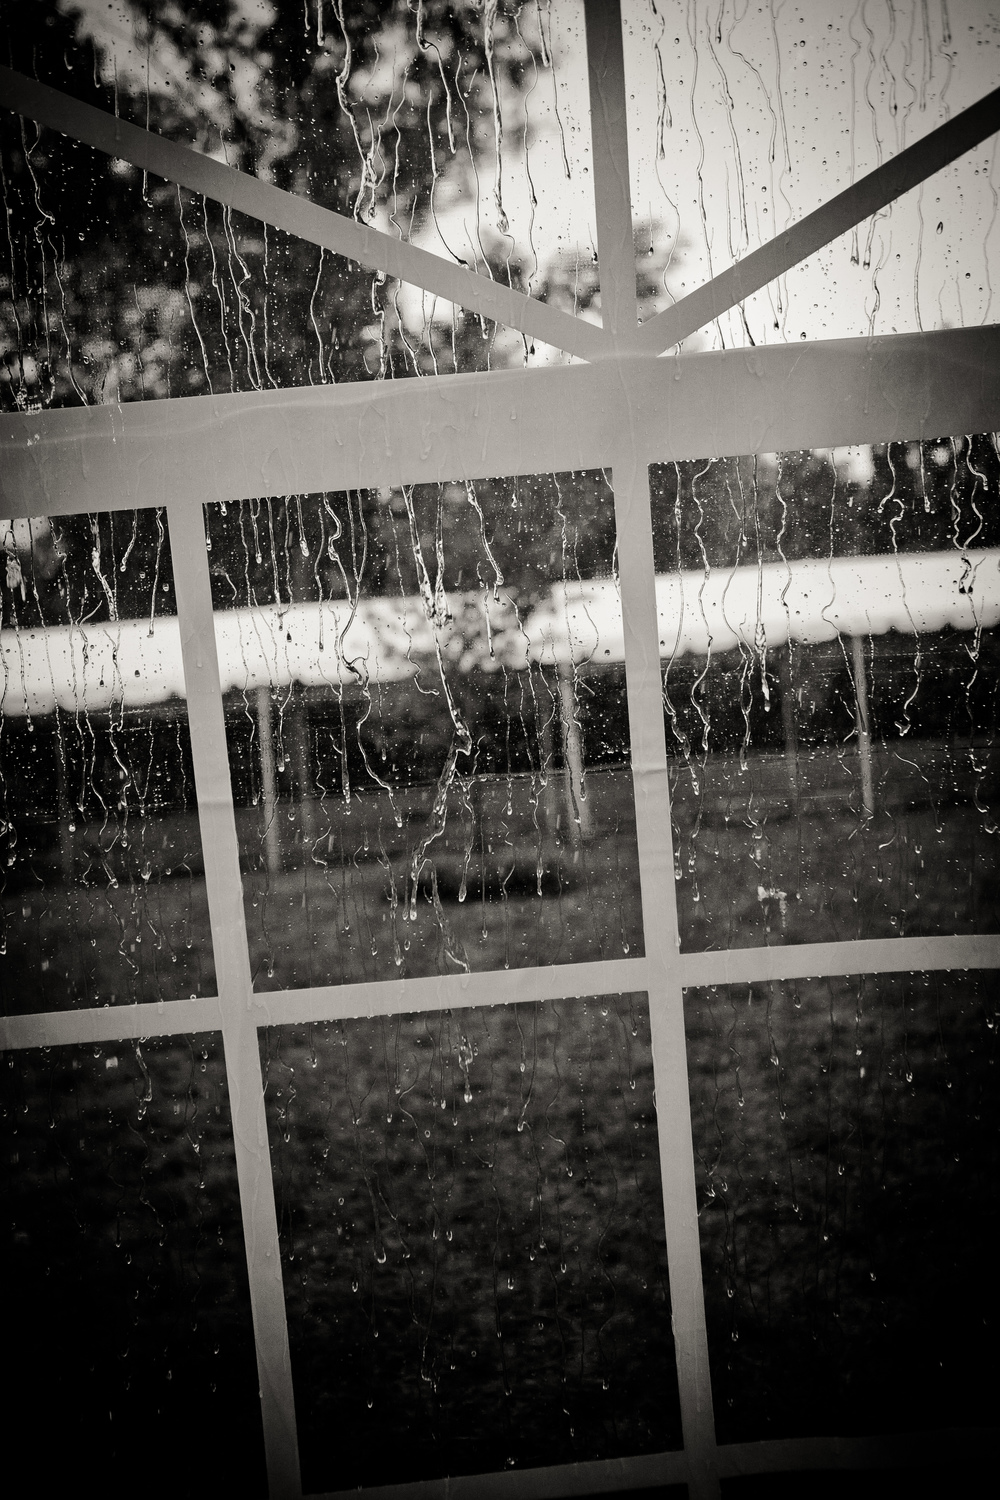 Rain on the window pane.